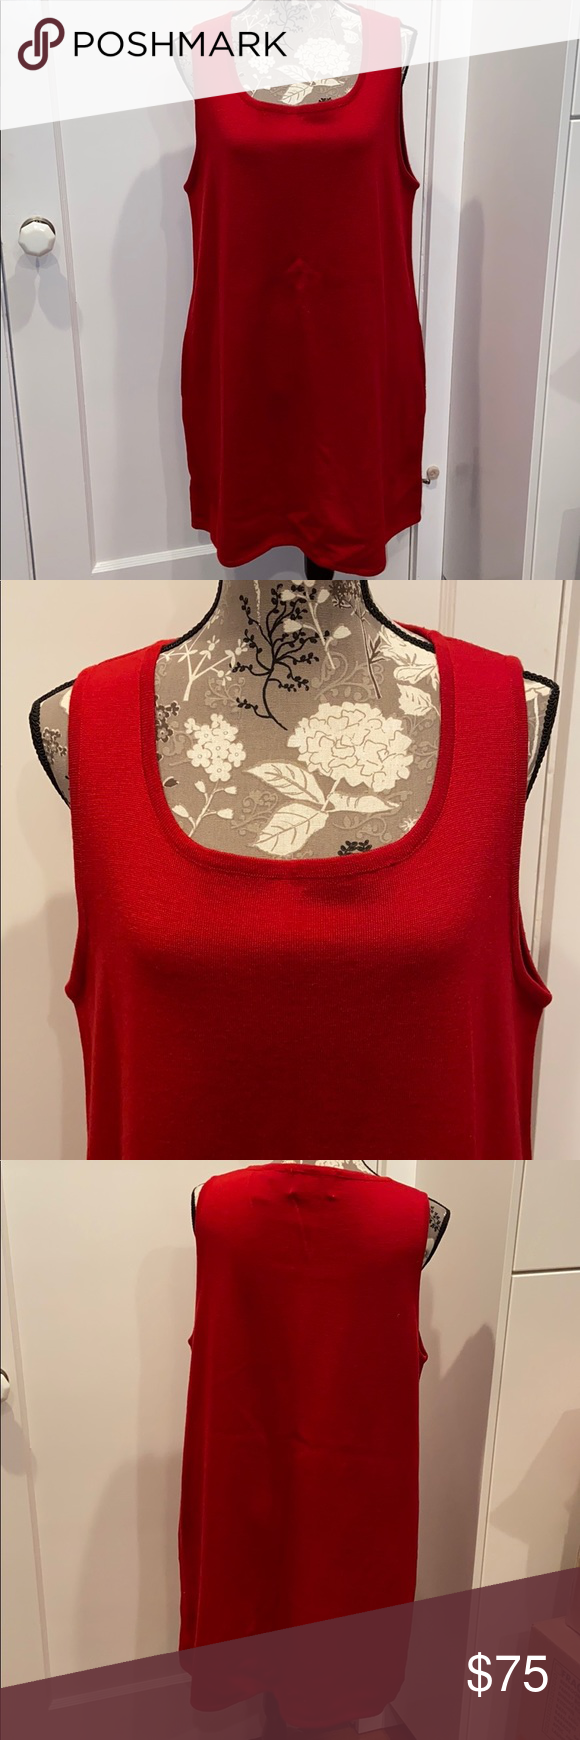 40++ Lord and taylor red dress ideas